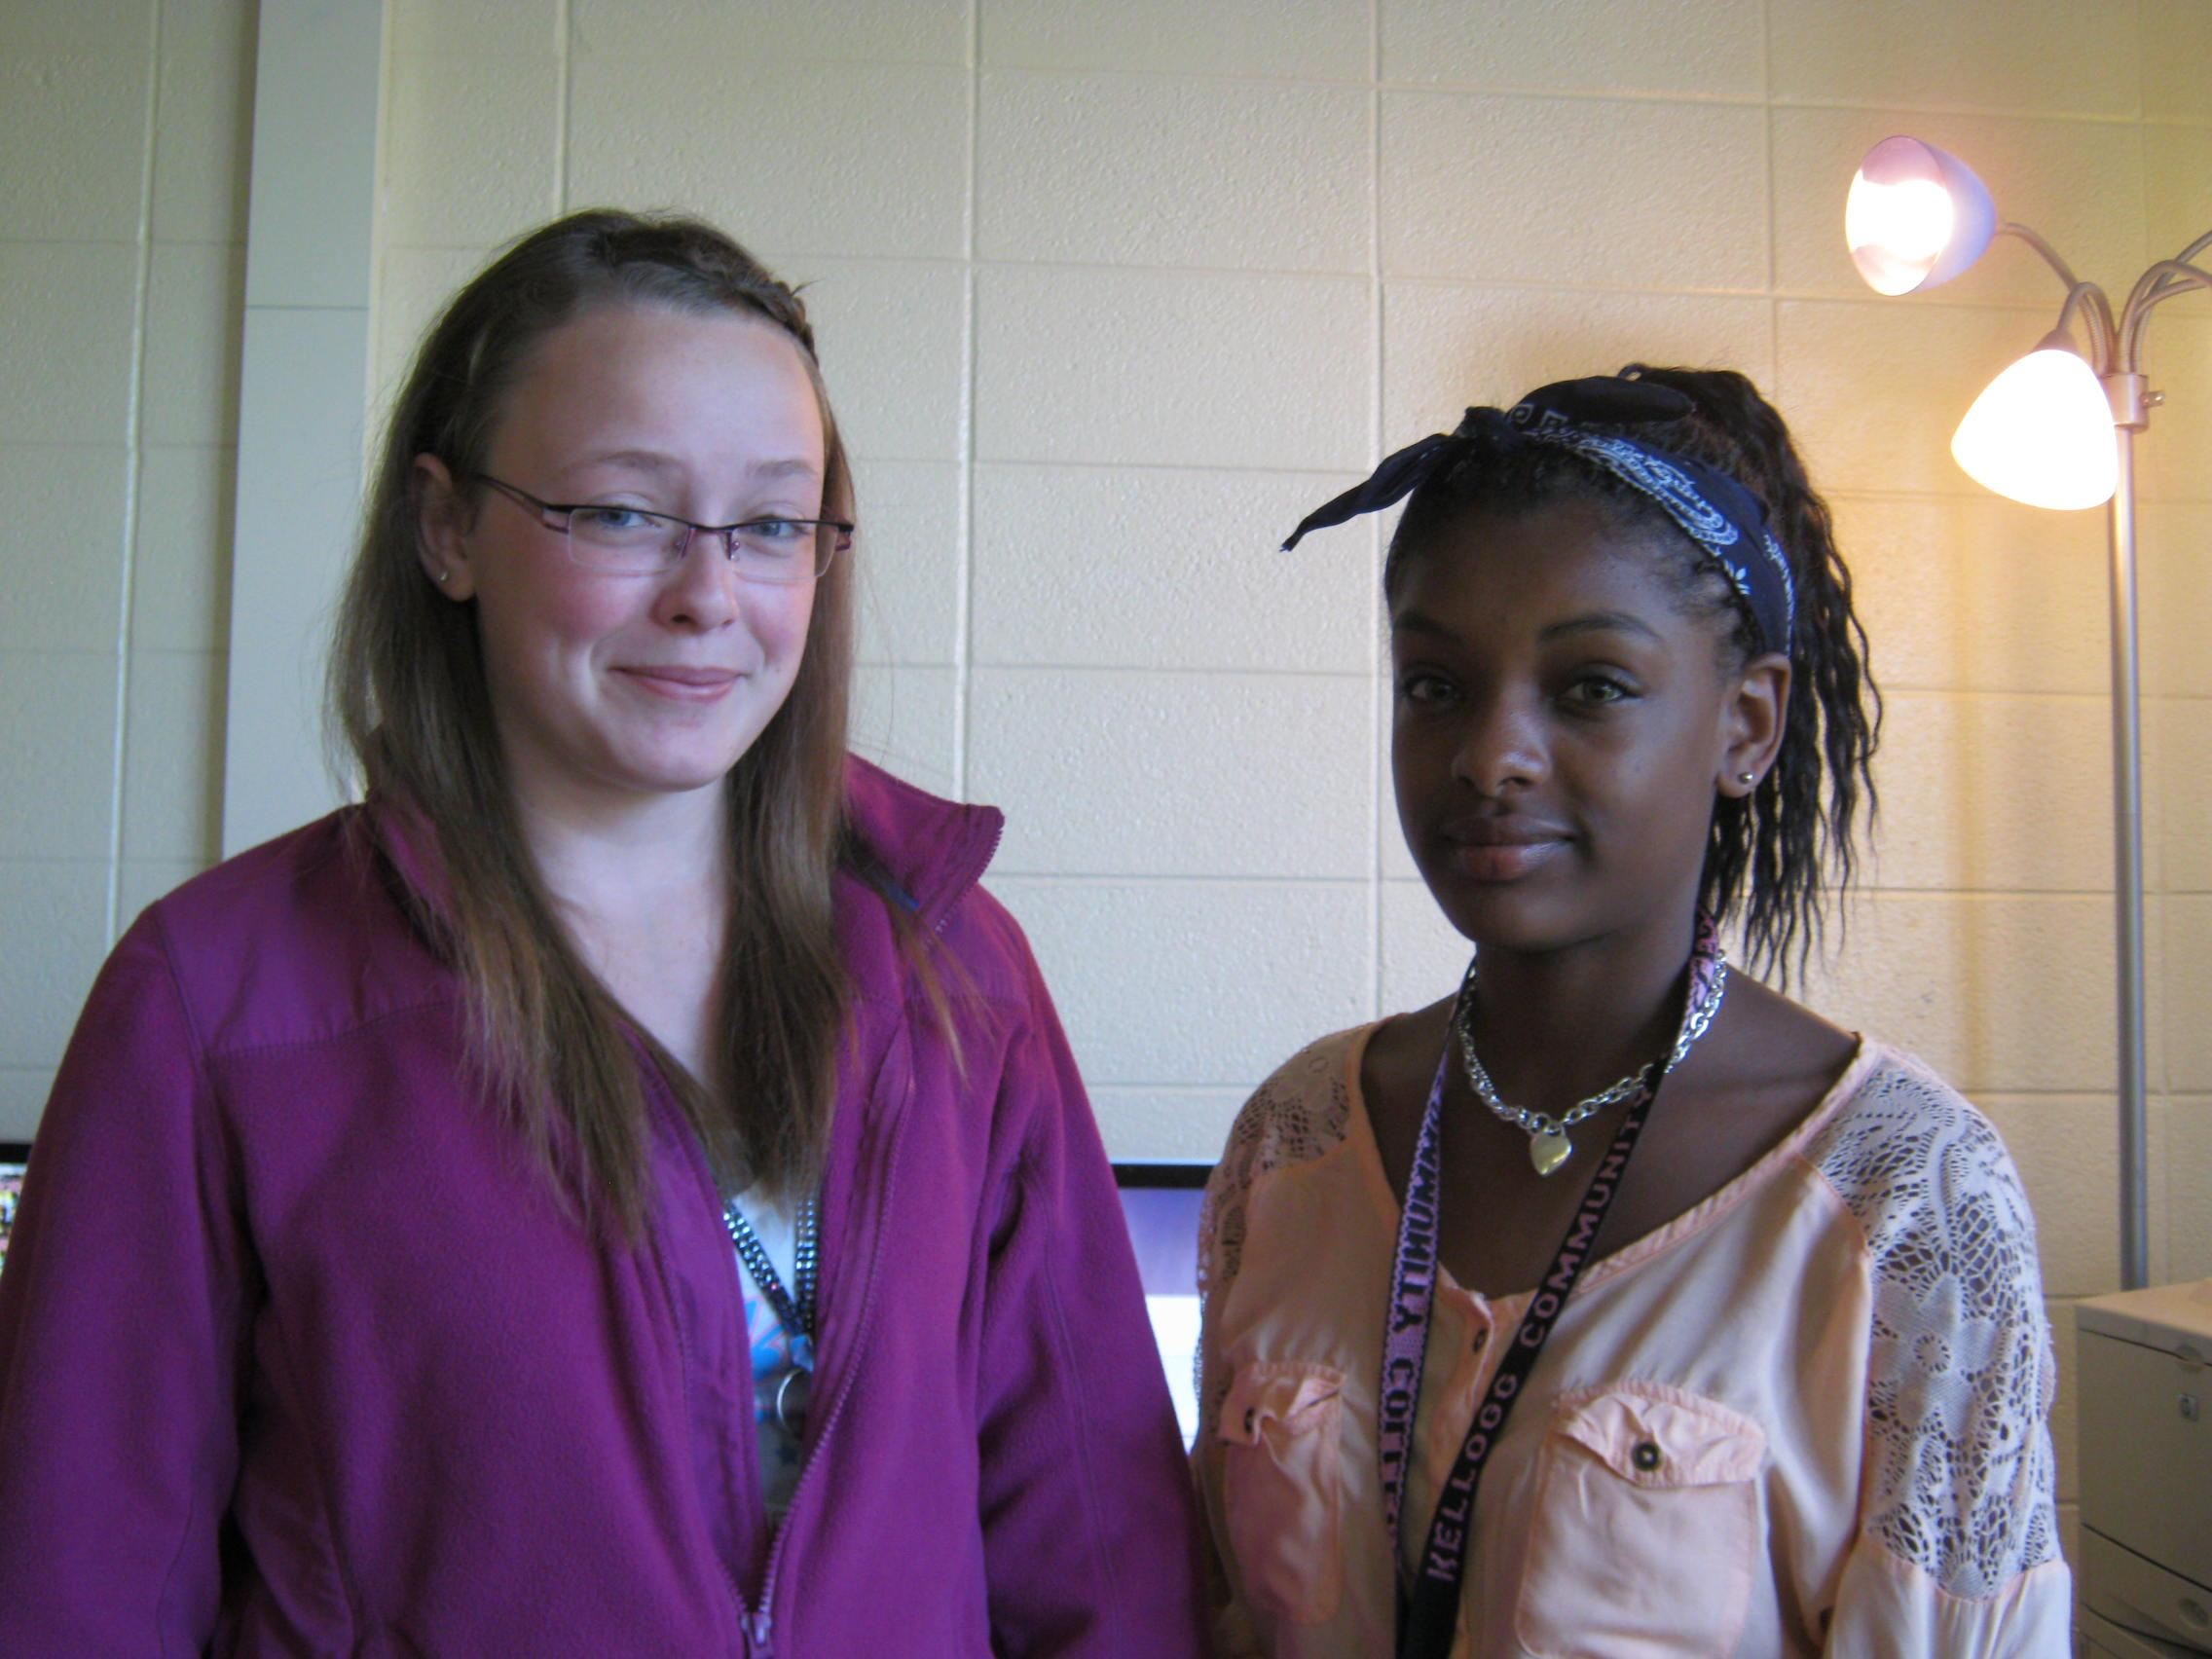 Photo by Corrin Davis After a minute of scuffling to put away their papers, Jillian Kalhorn (left) and Jazmyn Jackson (right) pause in Ms. Pankop's class before heading out to do an out-of-class assignment on May 23rd. For Kalhorn and Jazmyn, the choice to work together on the project was a no-brainer, they didn't even have to discuss it, but were ready to get to work straight after receiving the assignment.